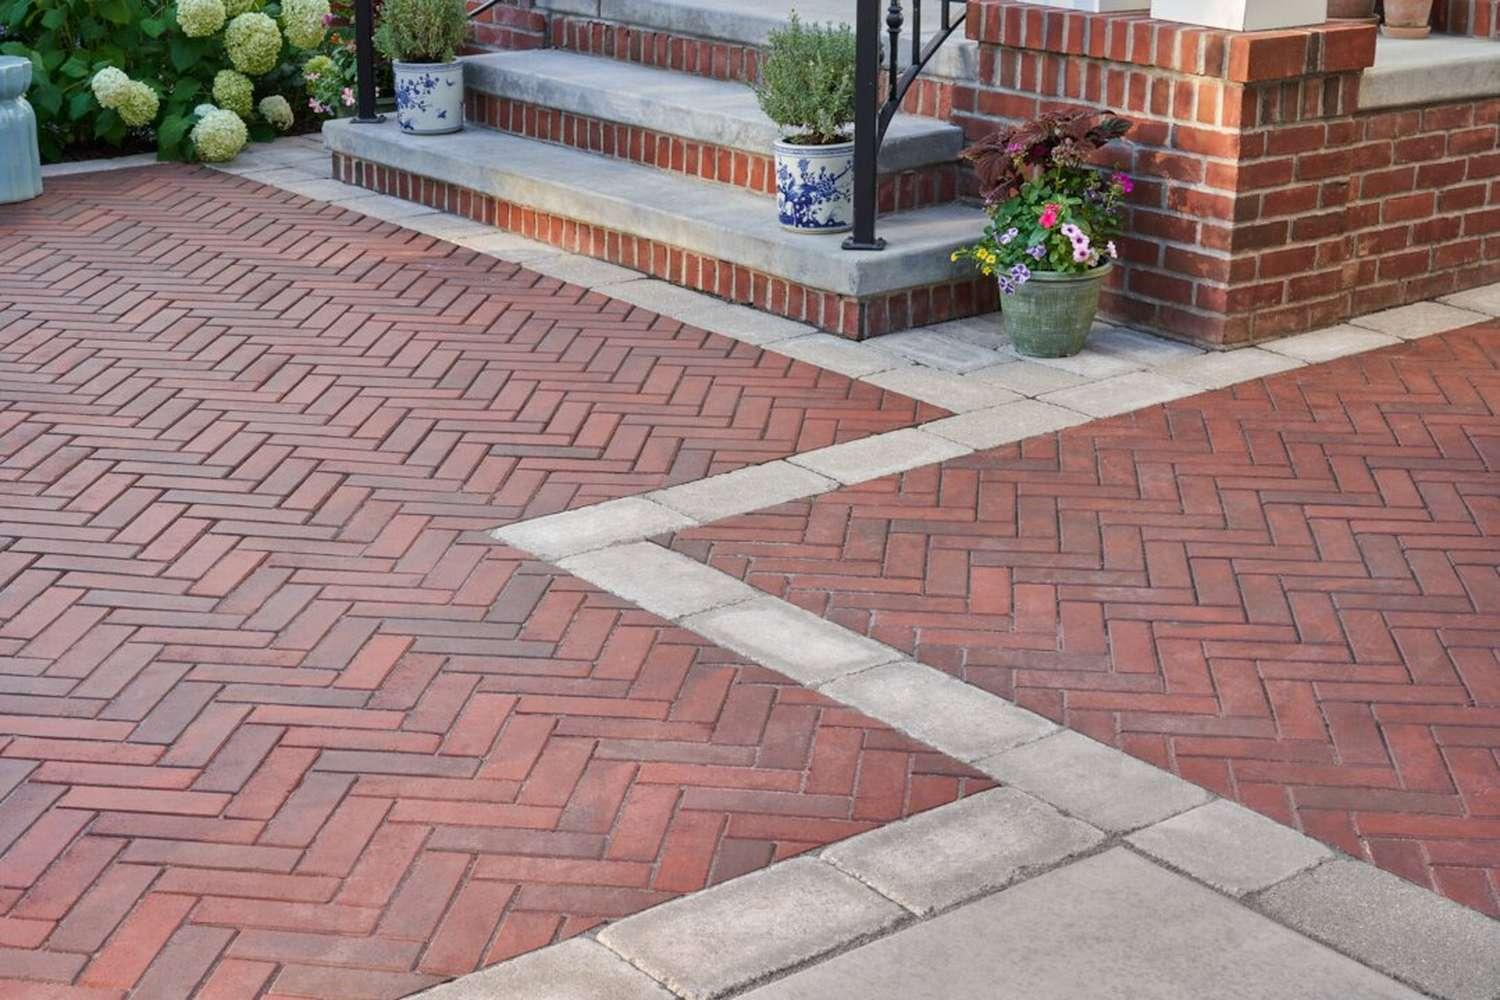 brick front steps with clay paver patio in herringbone pattern concrete paver border